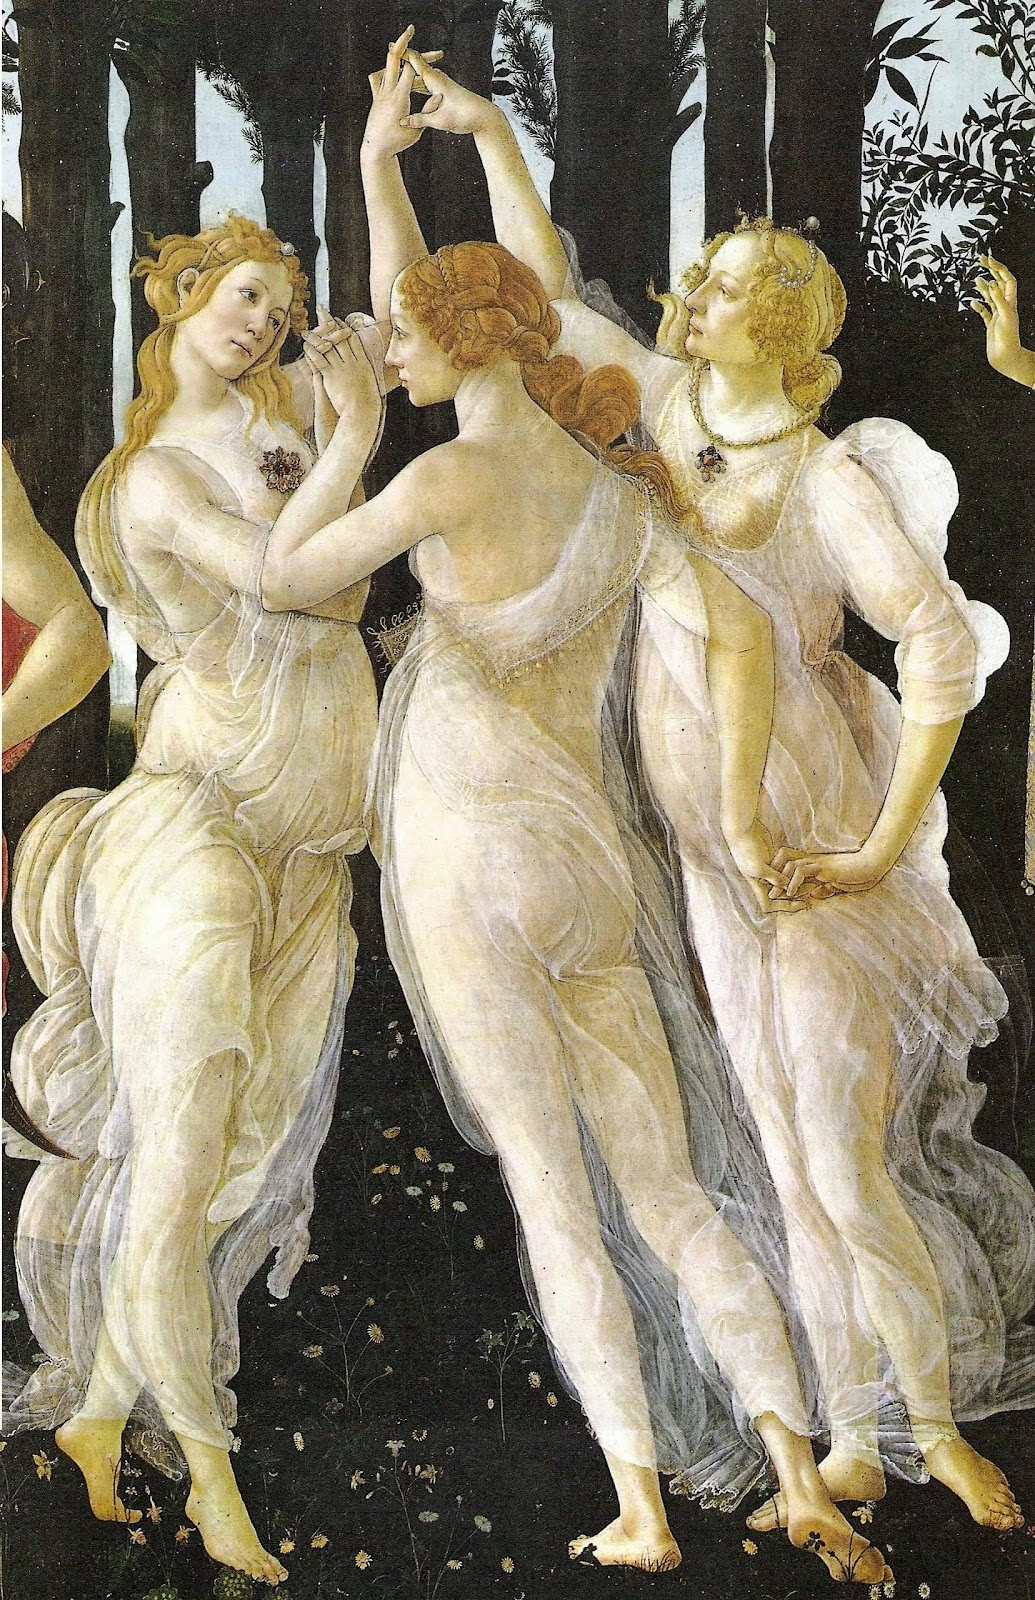 sandro-botticelli-three-graces-in-primavera-1485-1487.jpg